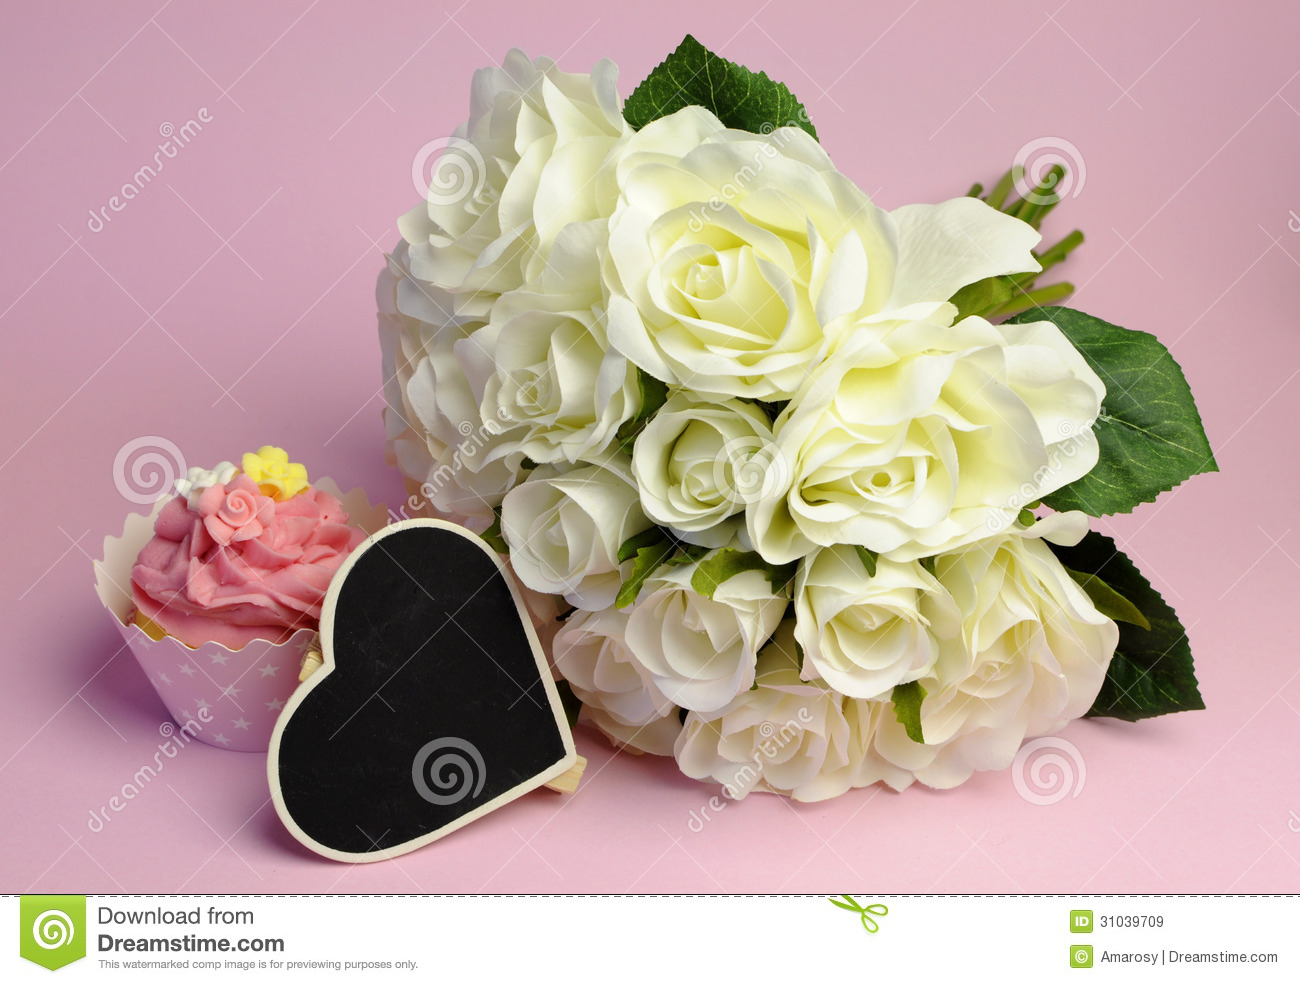 Wedding White Roses Bouquet With Pink Cupcake And Blank Heart Sign